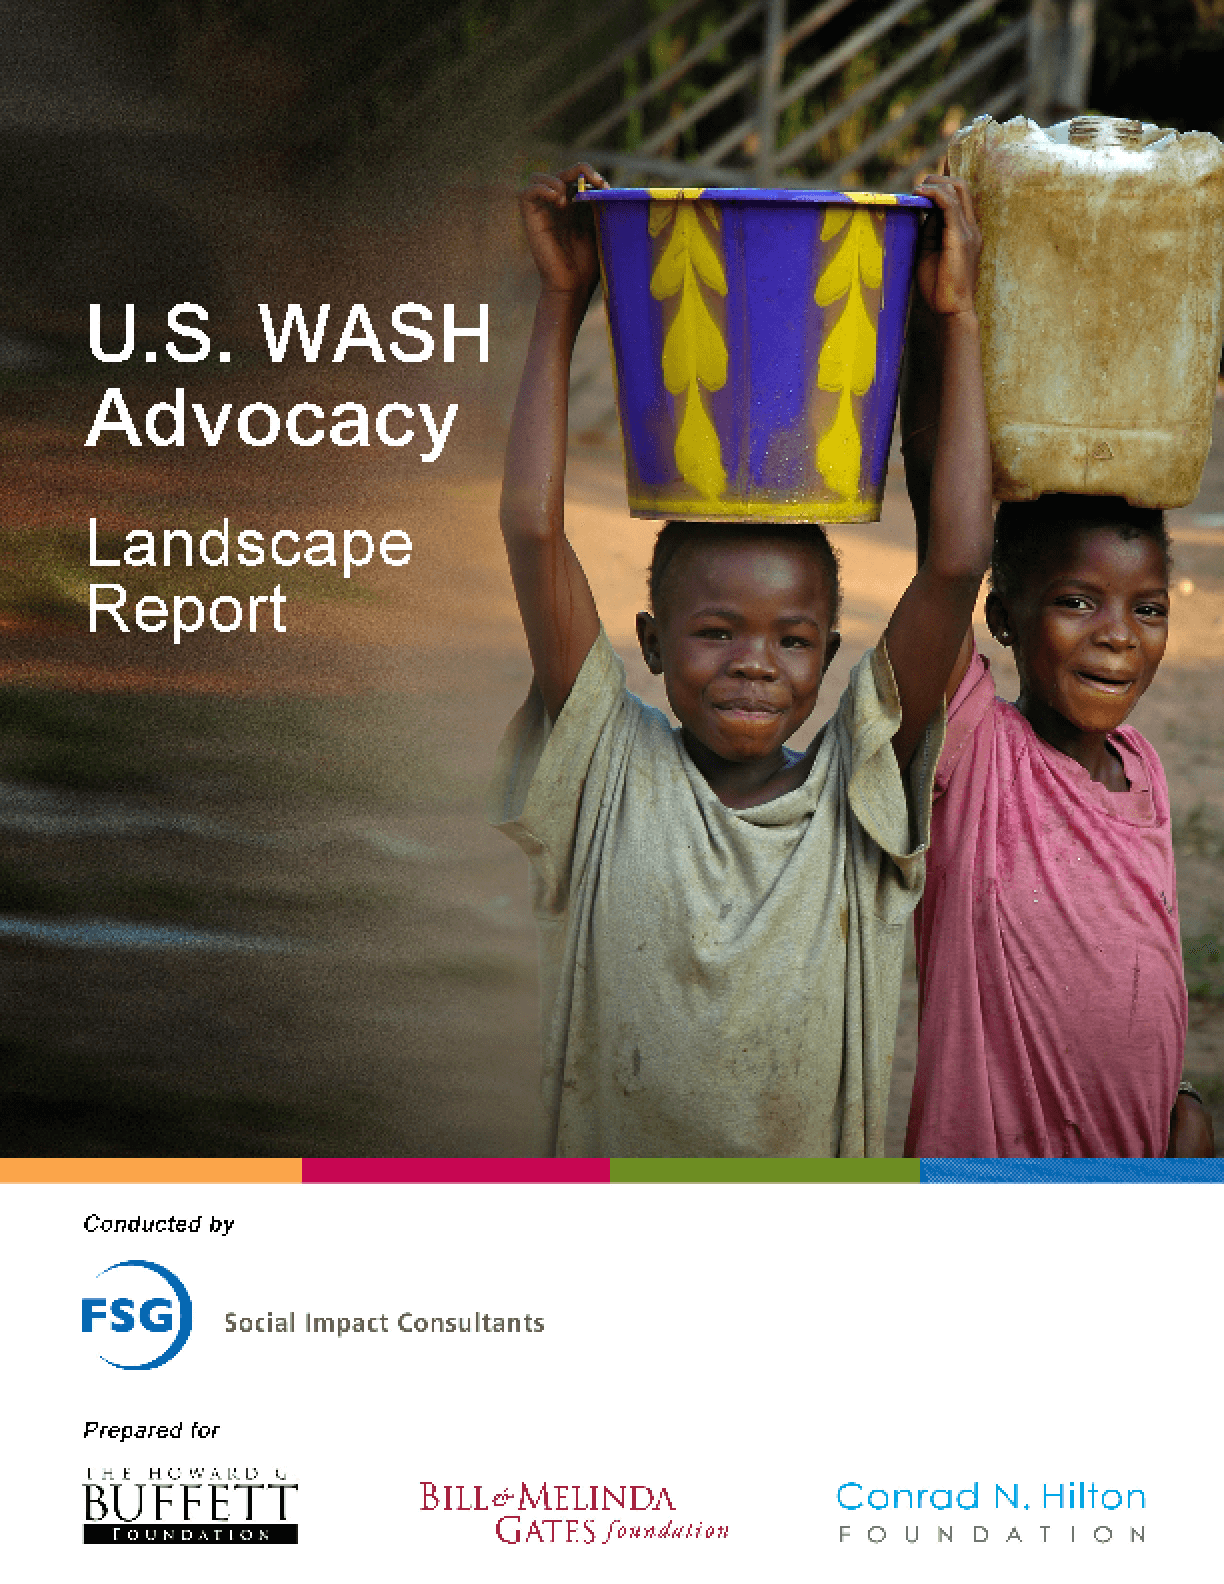 Water Access, Sanitation, and Hygiene (WASH): U.S. Advocacy Landscape